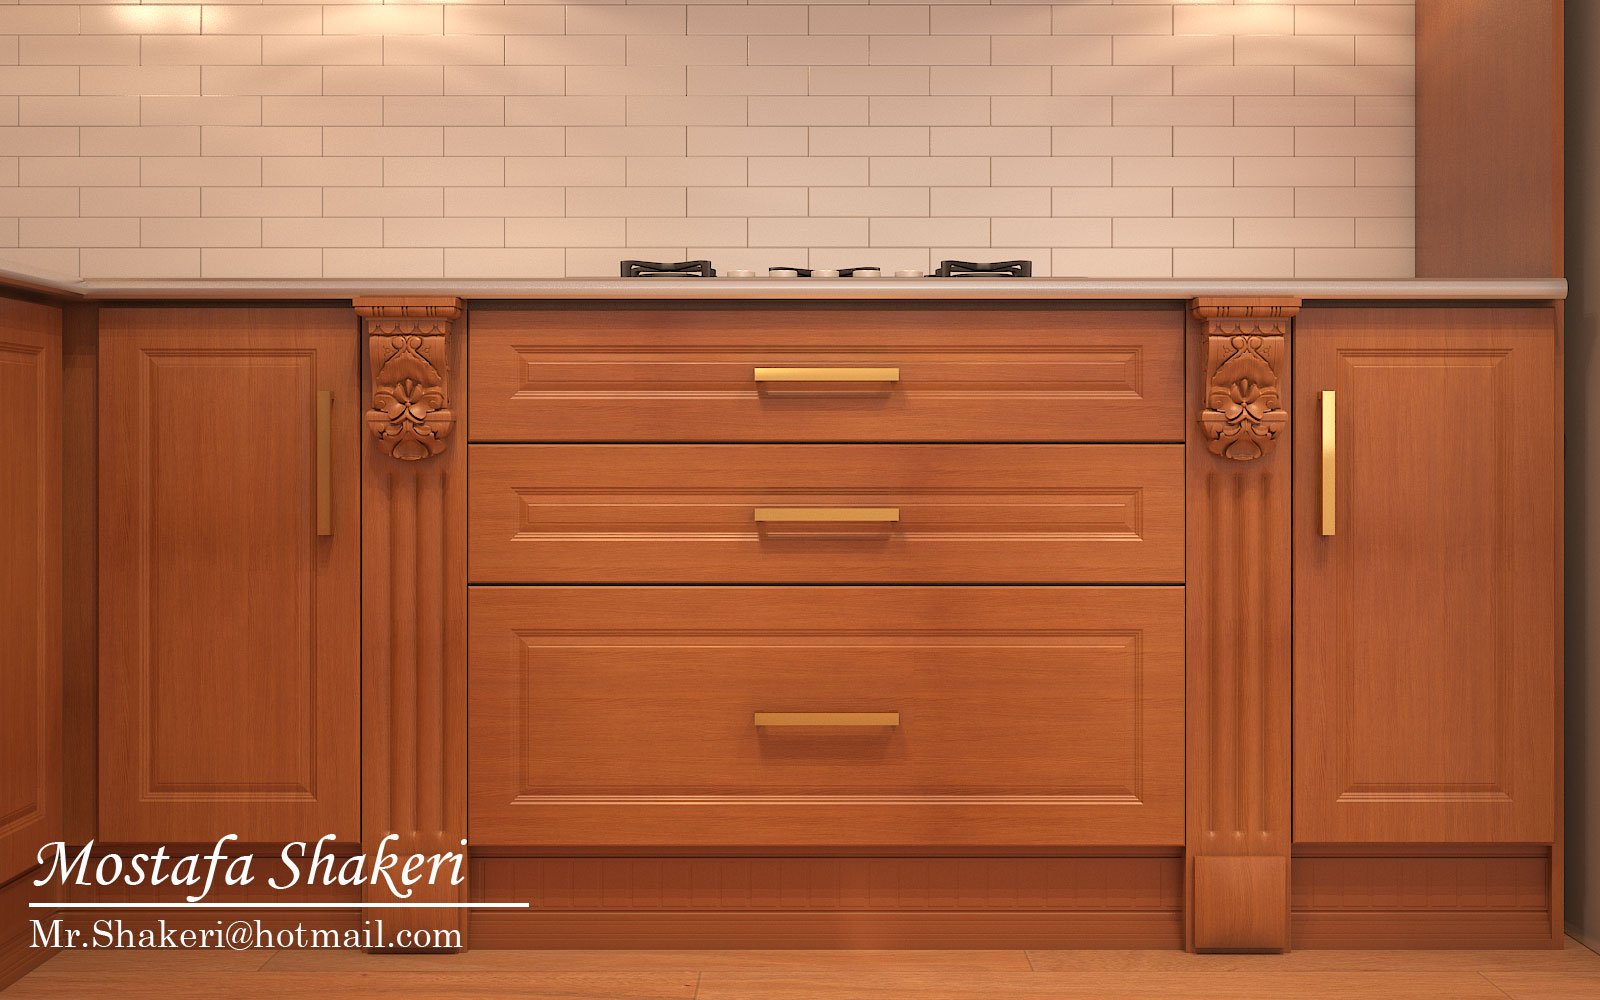 Kitchen classic in 3d max vray 3.0 image